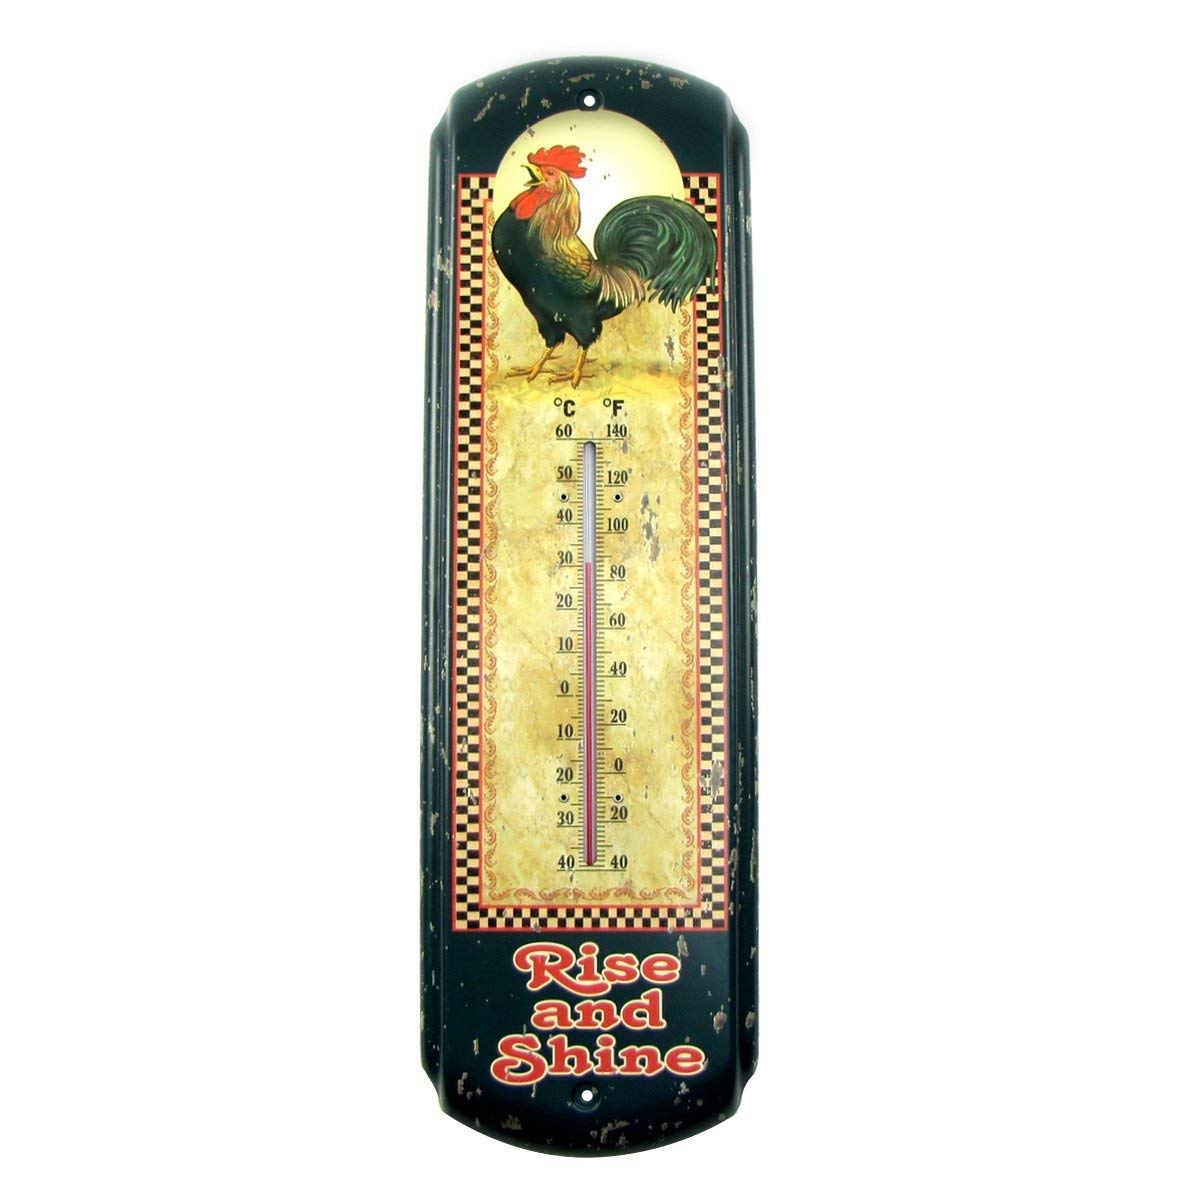 Rise & Shine Rooster Indoor/Outdoor Thermometer Chicken Farm Patio Garden Decor